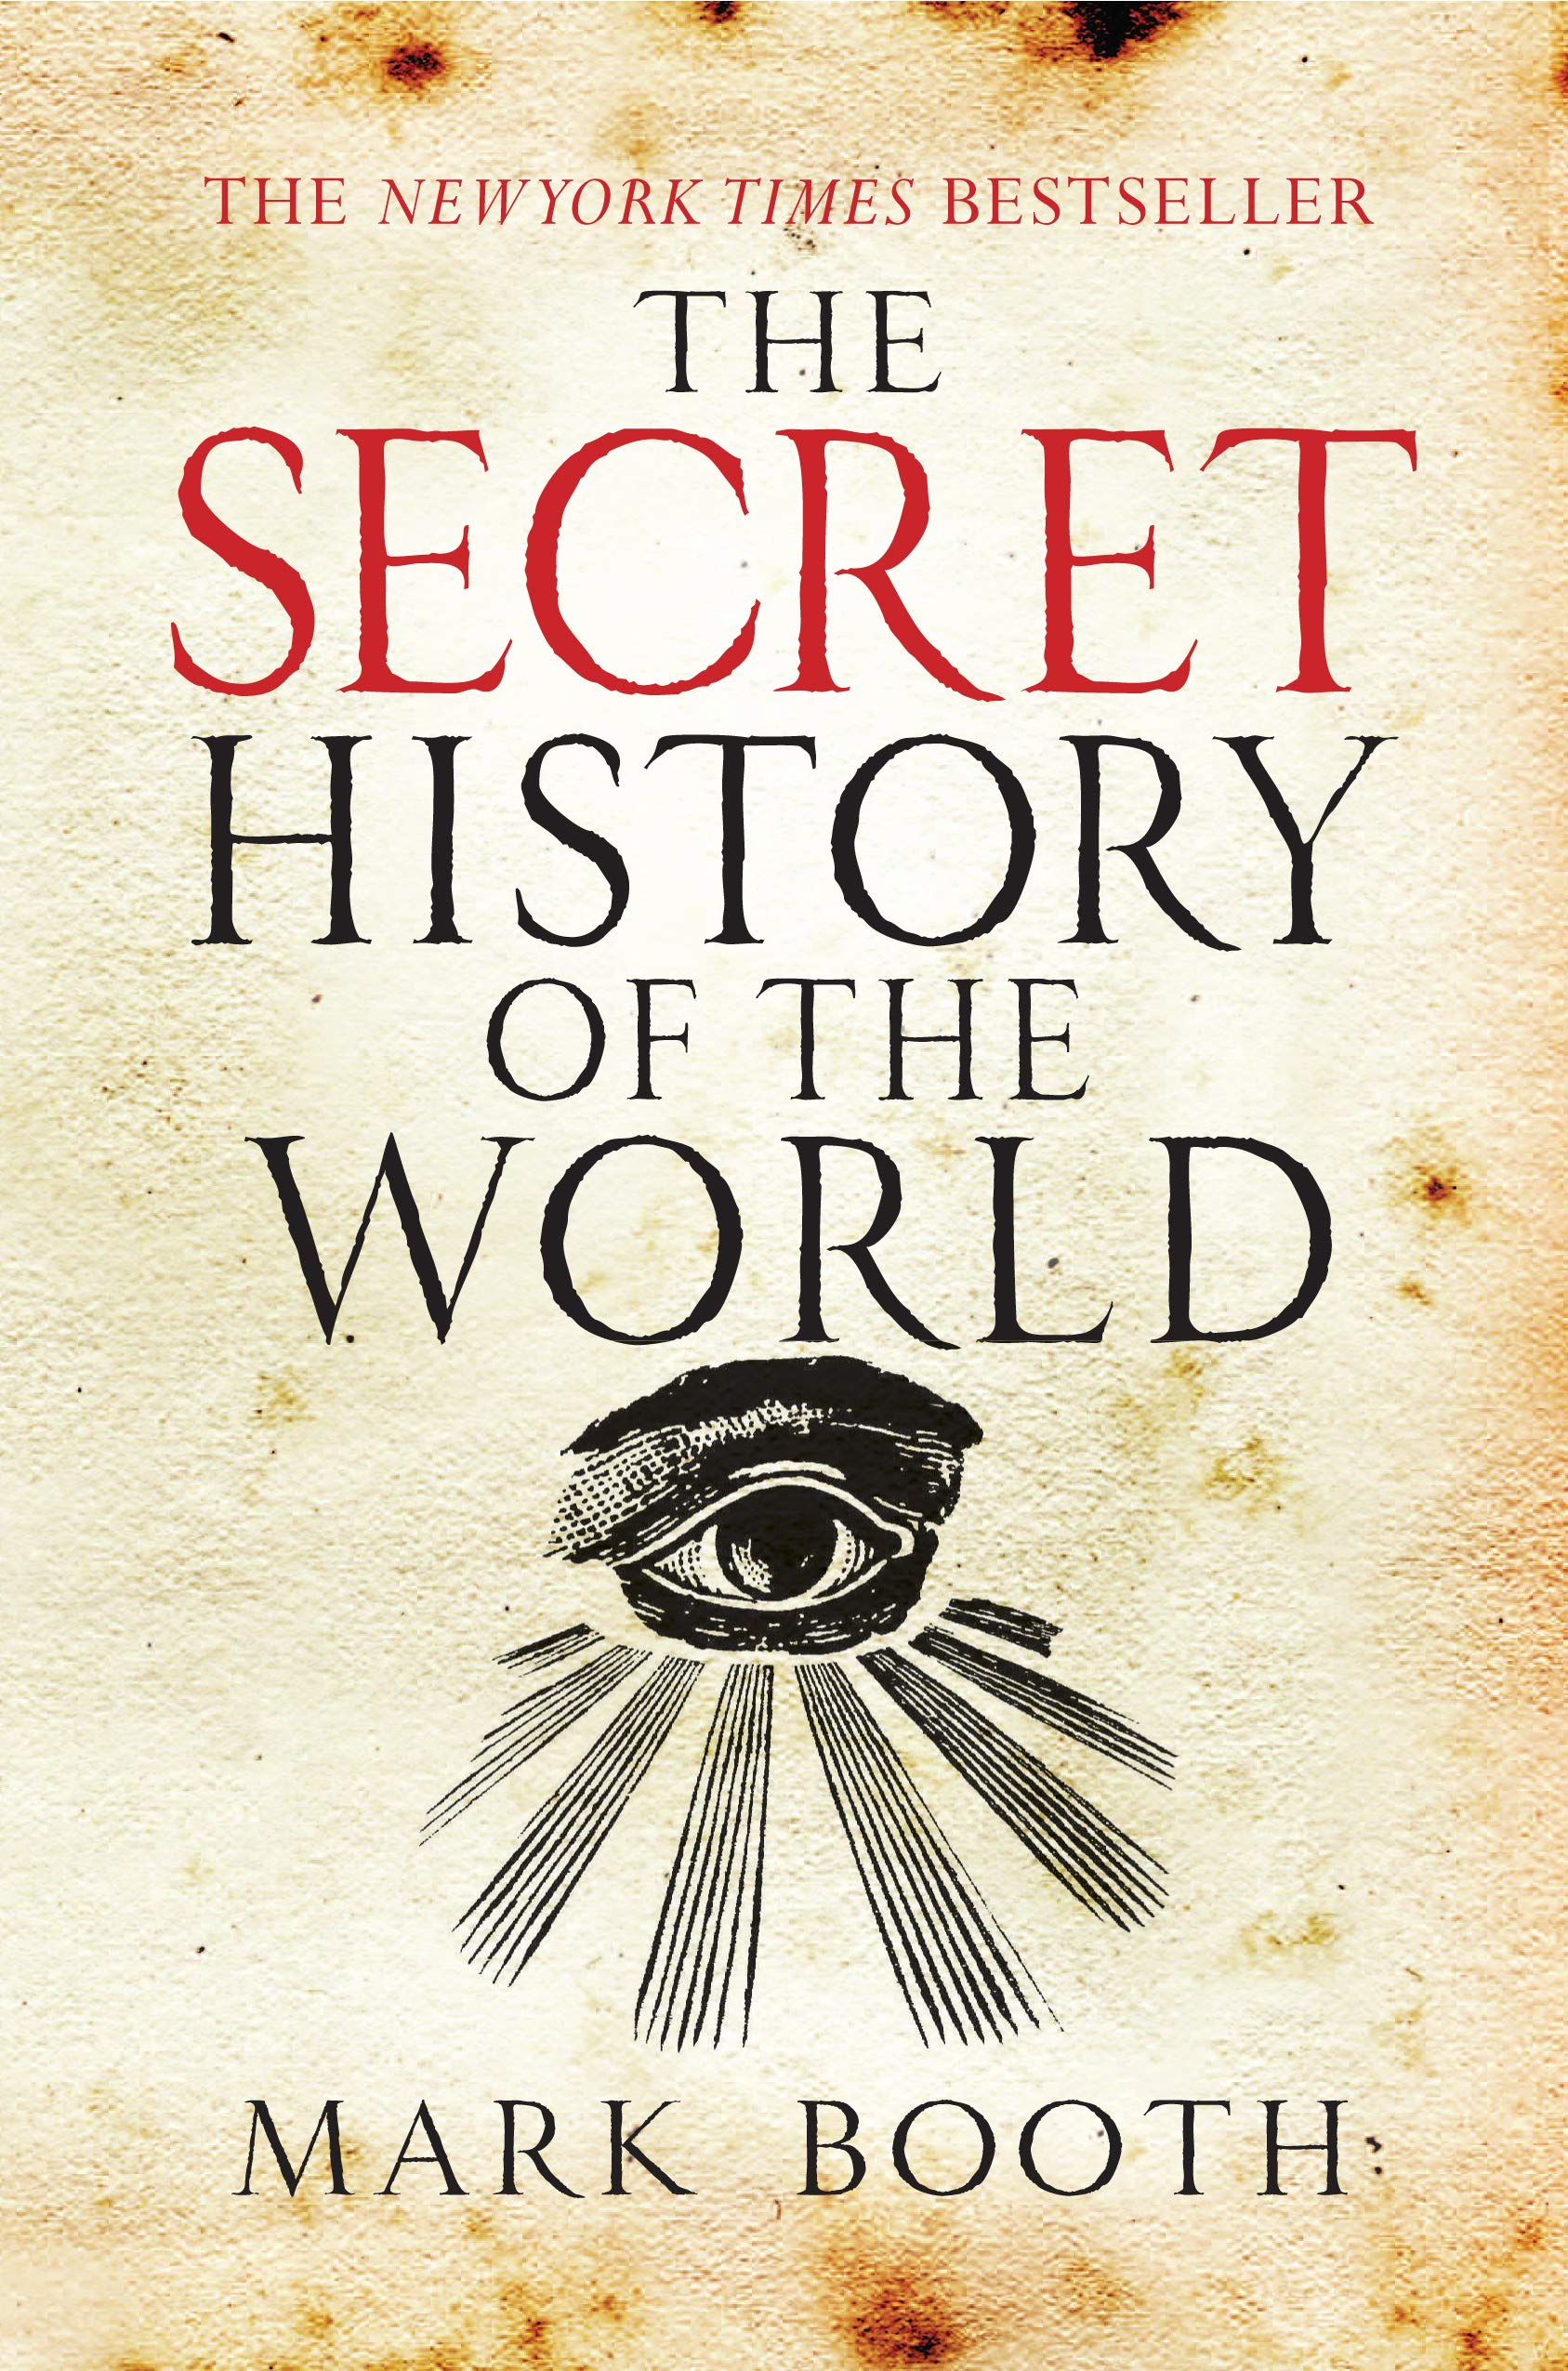 The Secret History of the World: Mark Booth: 9781590201626